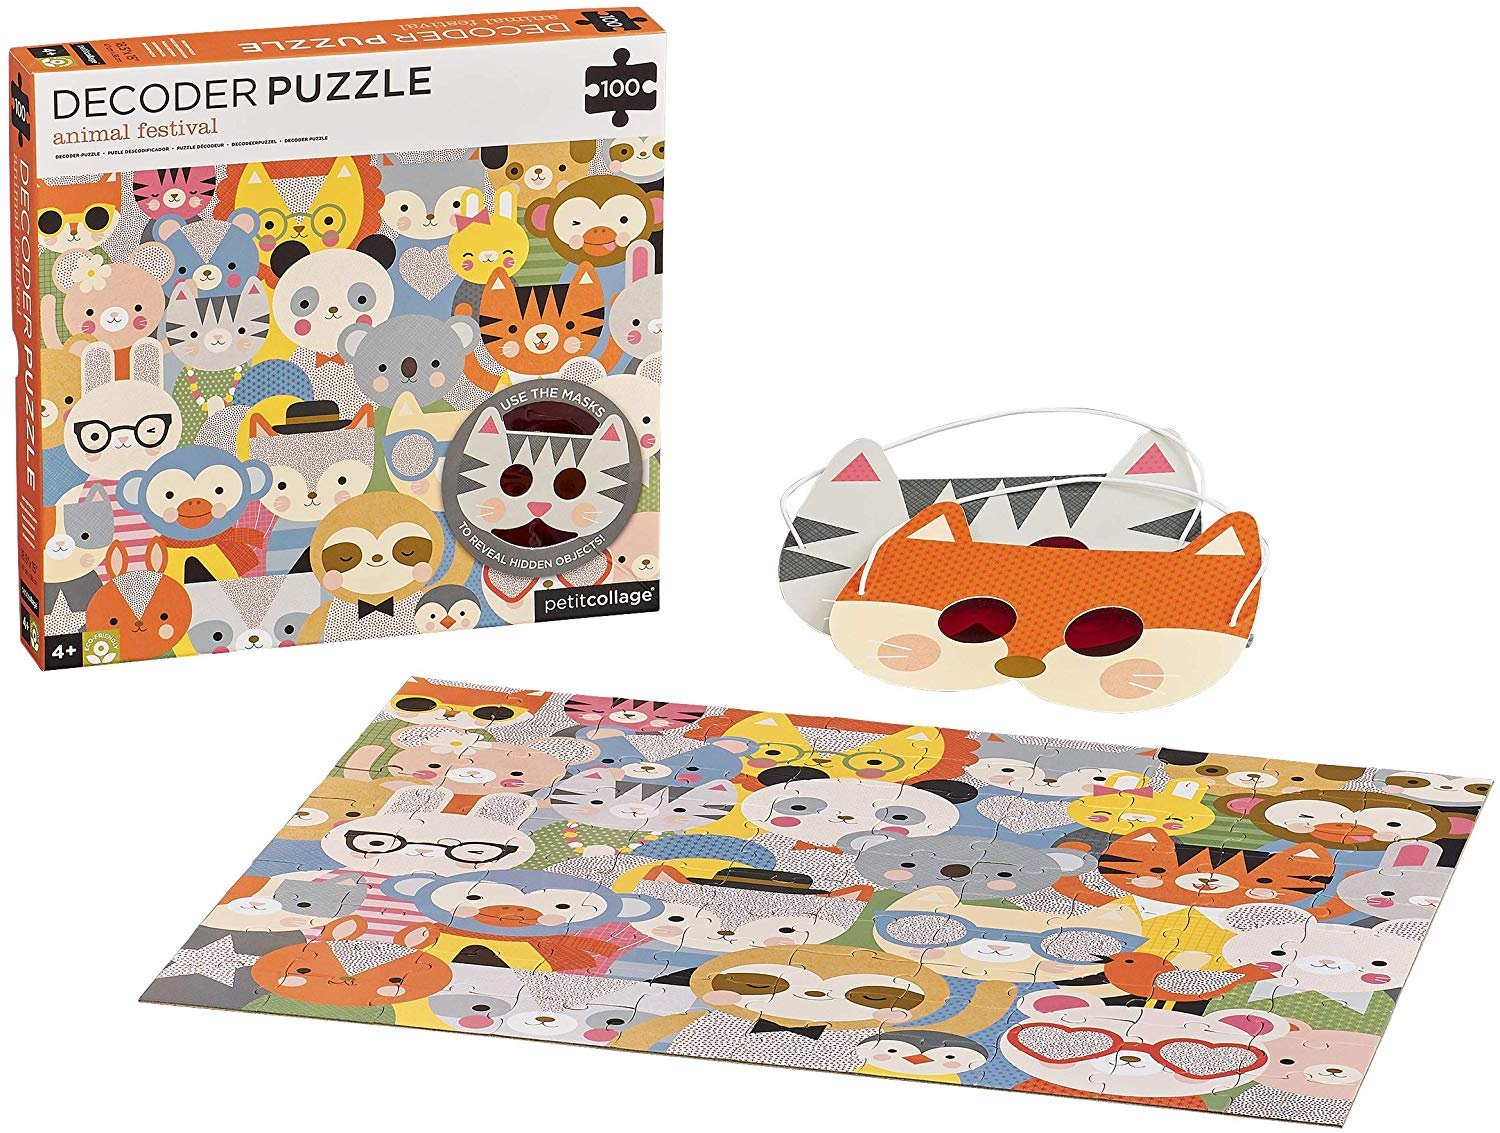 Decoder Puzzle - Animal Festival by Petite Collage